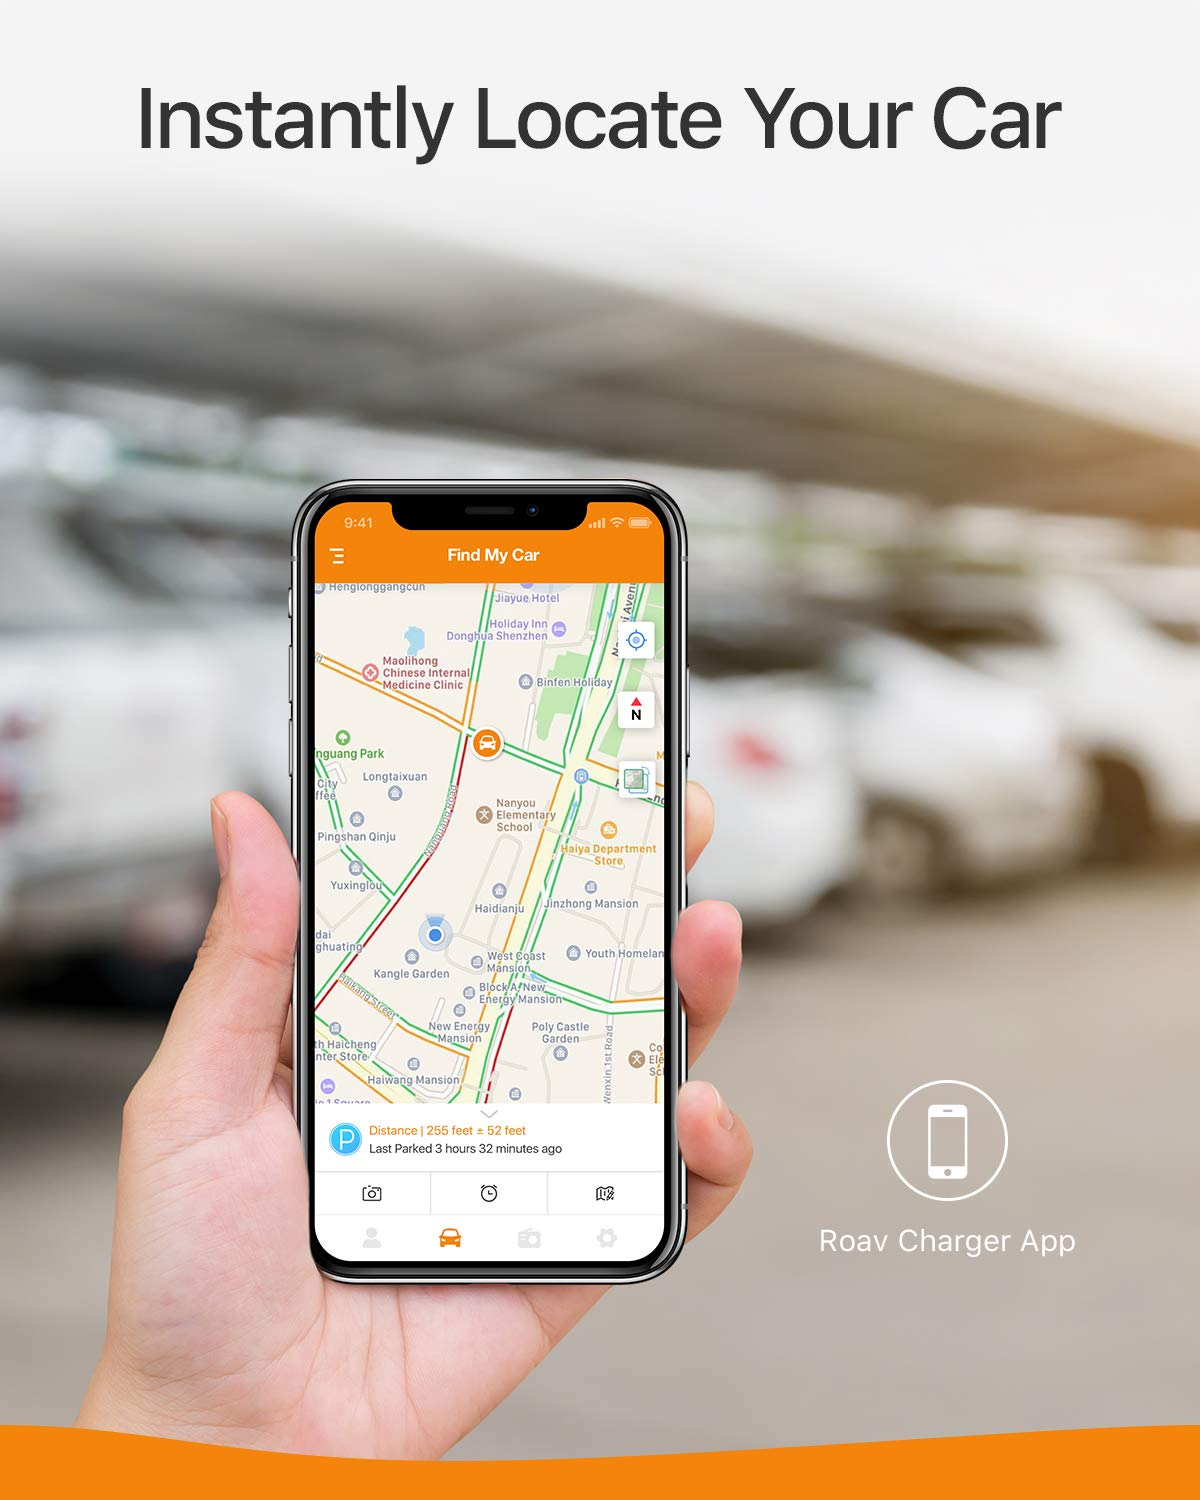 Roav SmartCharge F2, by Anker, FM Transmitter, Bluetooth Receiver, Car Charger with Bluetooth 4.2, Car Locator, App Support, 2 USB Ports, PowerIQ, AUX Output, and USB Drive to Play MP3 Files by ROAV (Image #2)